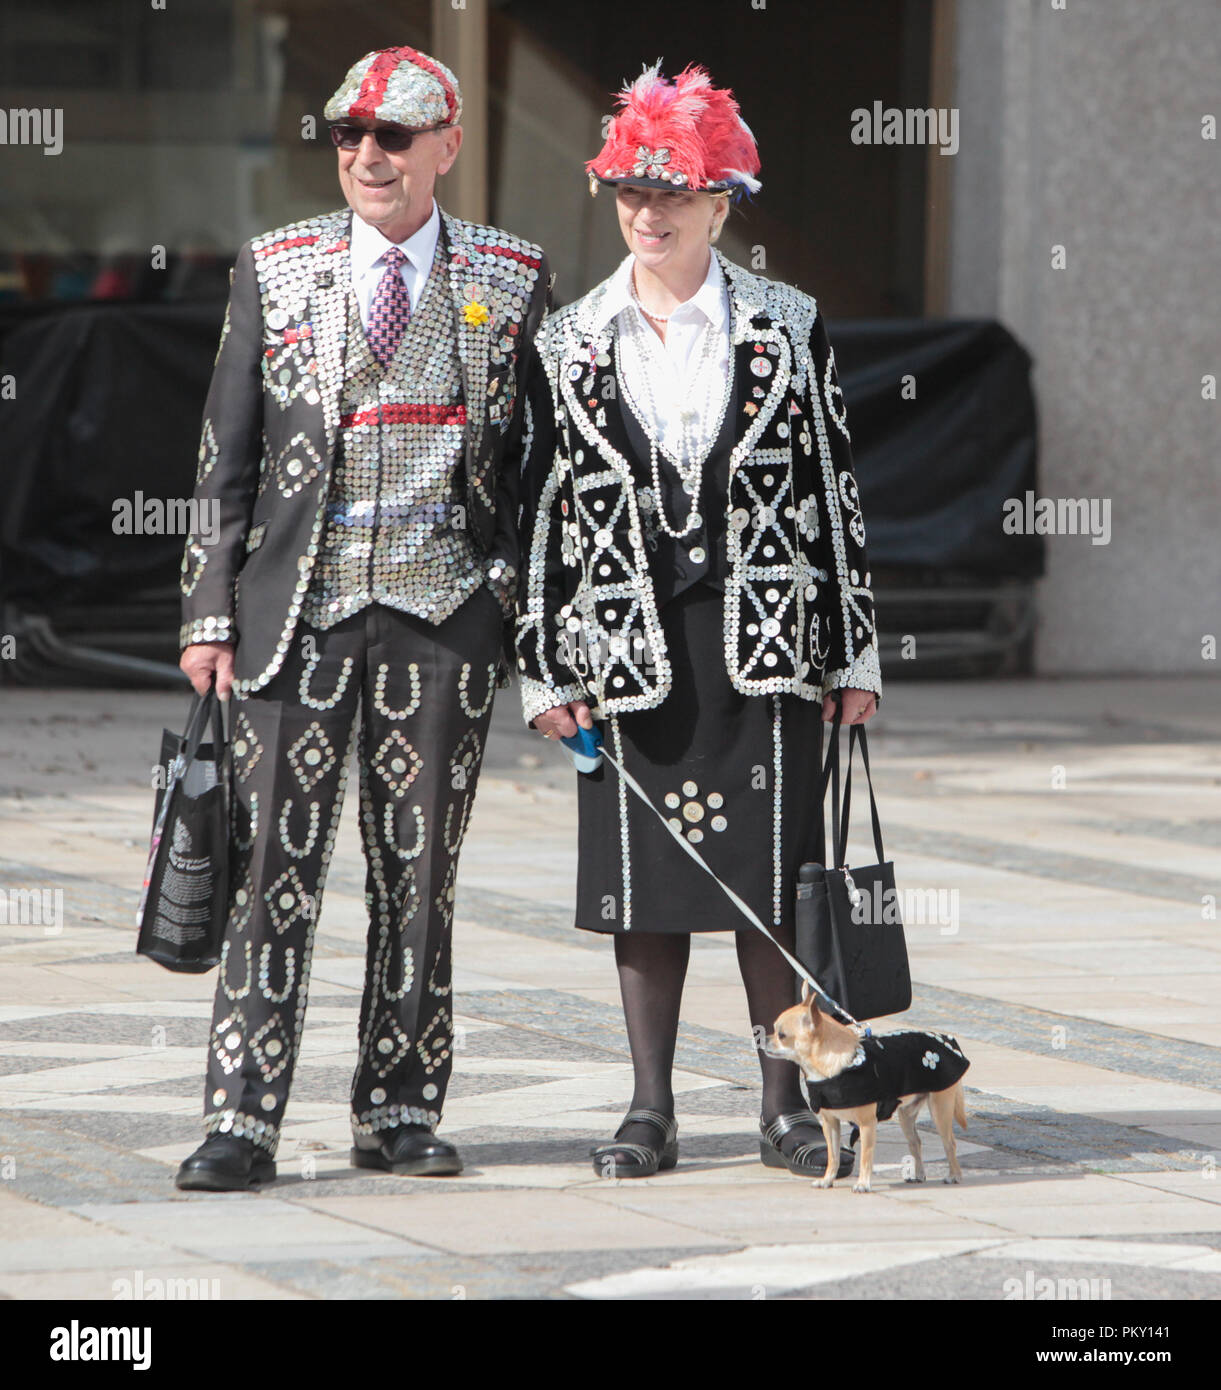 London UK  16 September 2018 Pearly Kings and Queens Harvest Festival at Guildhall Yard,Dressed in their best dark suits covered in hundreds of bright pearl buttons, the Pearly Kings and Queens of London got  together for the biggest event in the Pearly calendar, Credit: Paul Quezada-Neiman/Alamy Live News - Stock Image